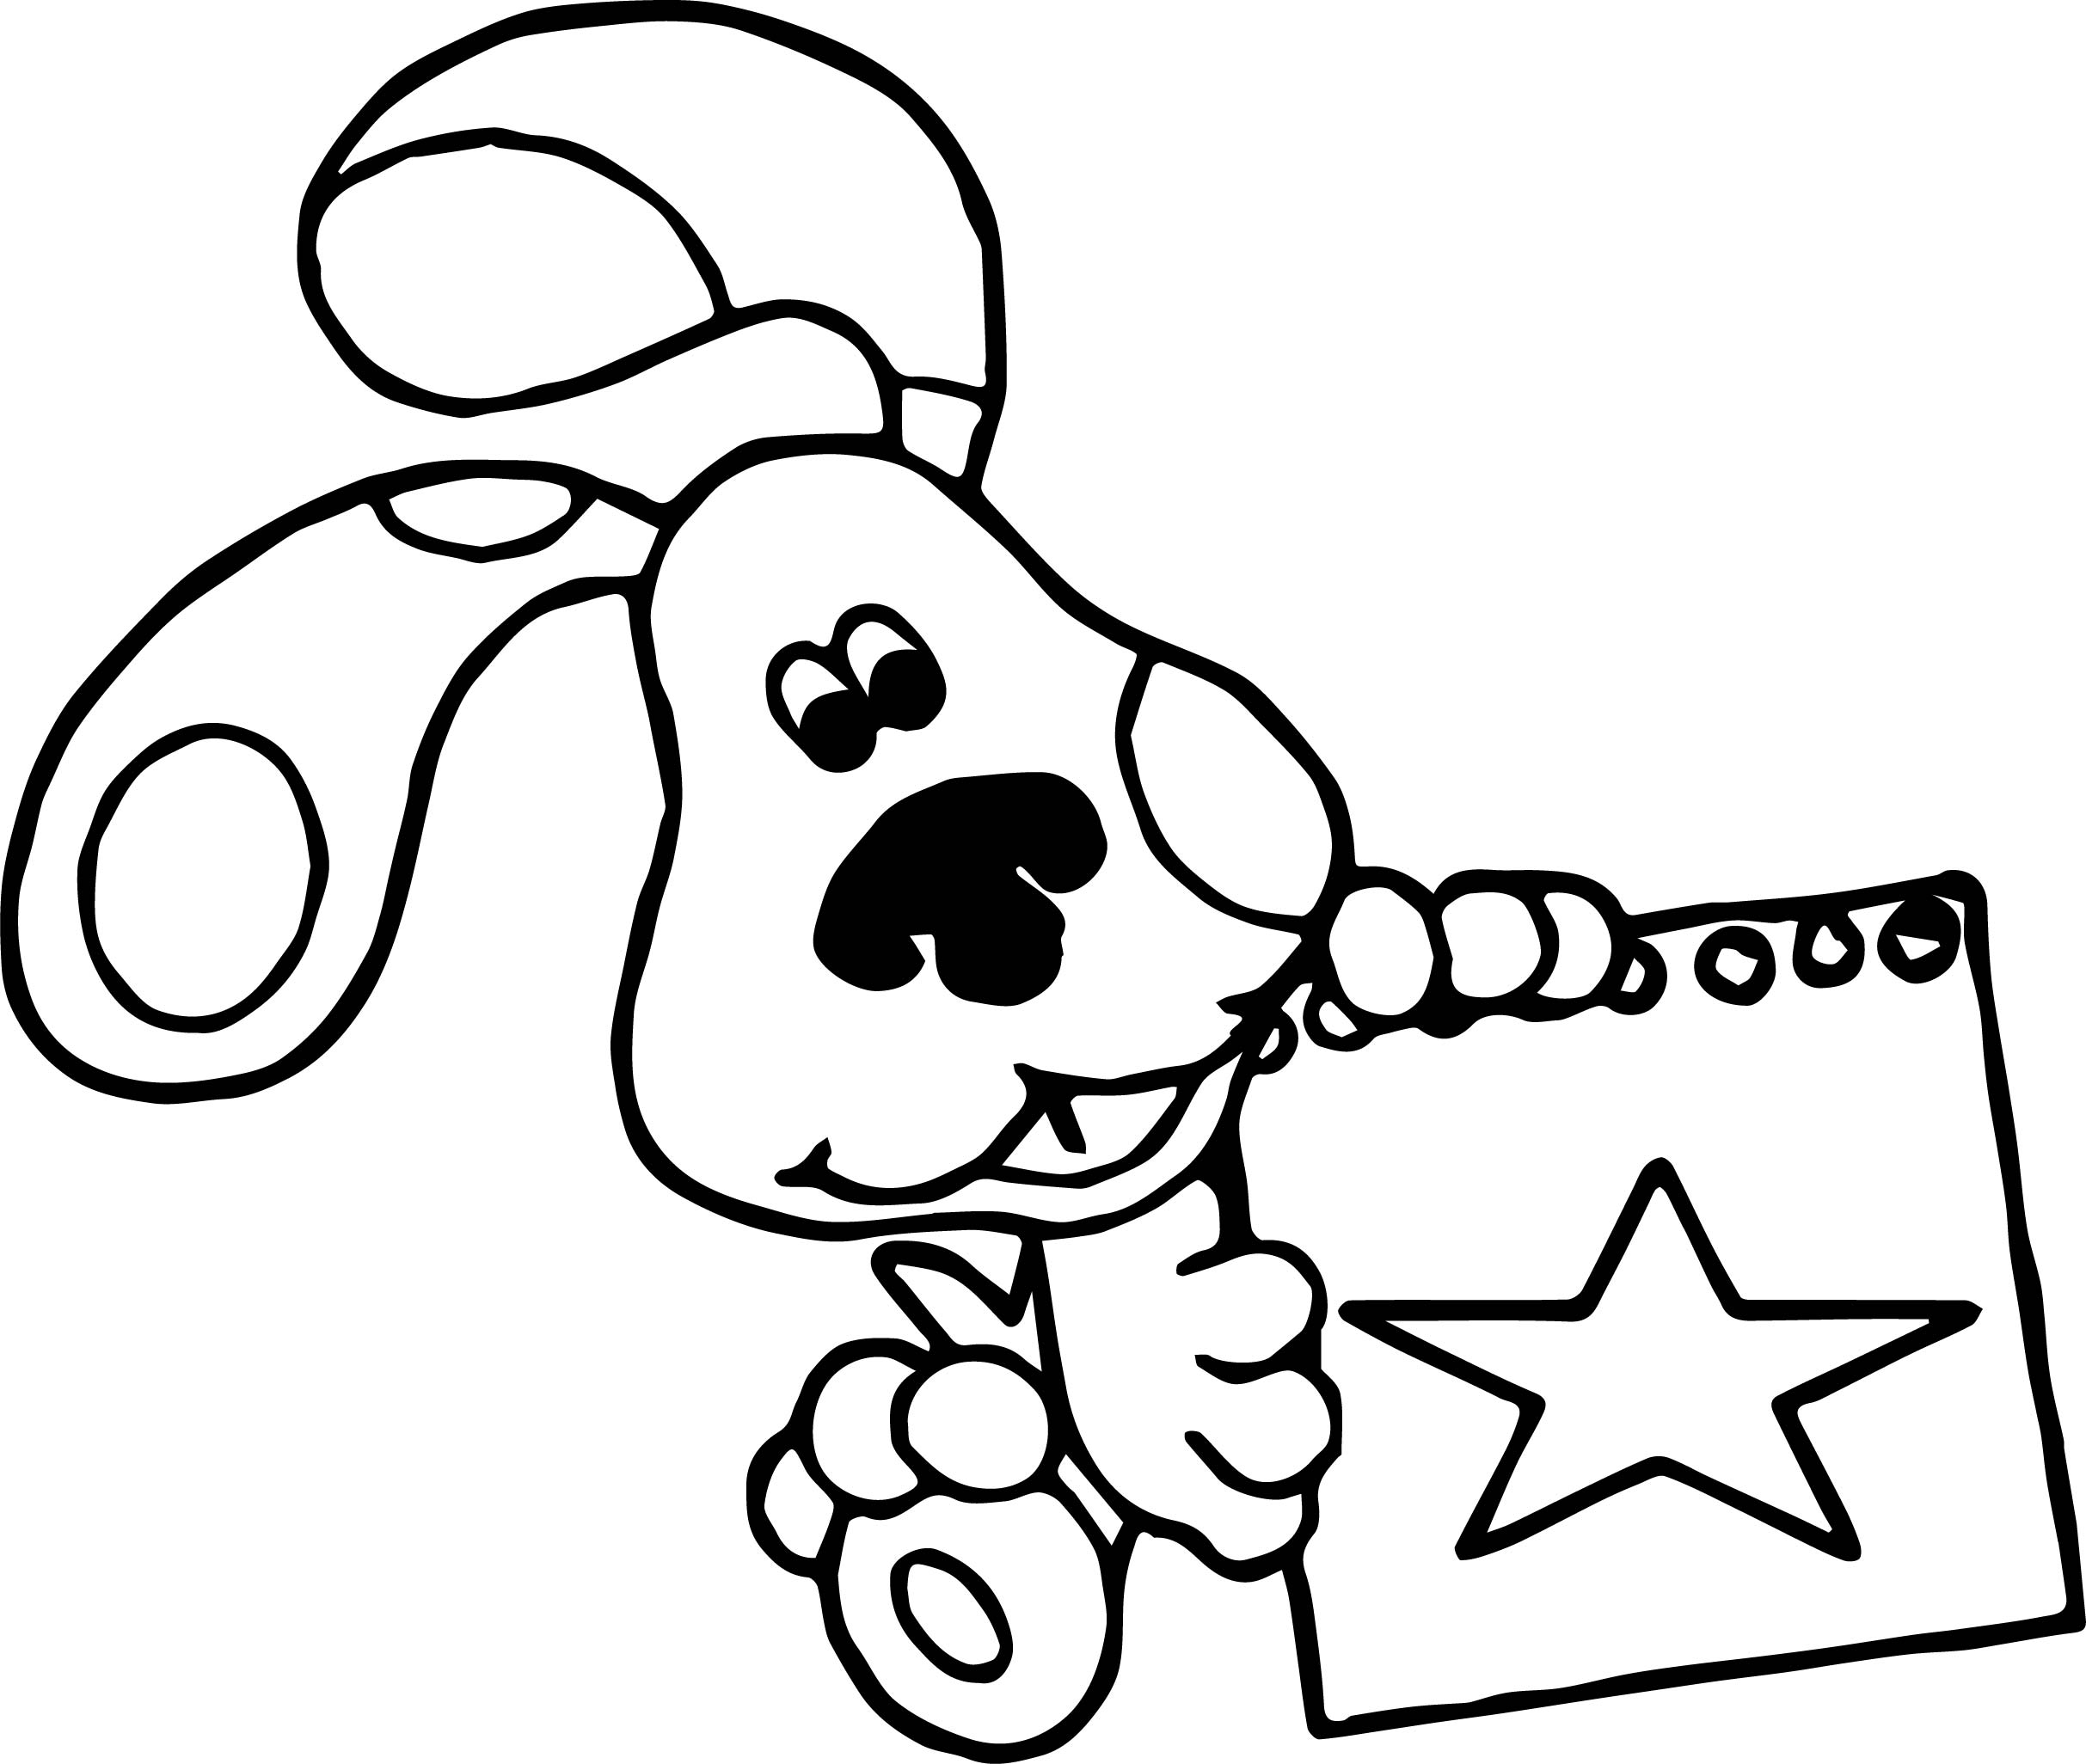 Blue's Clues Star Coloring Page